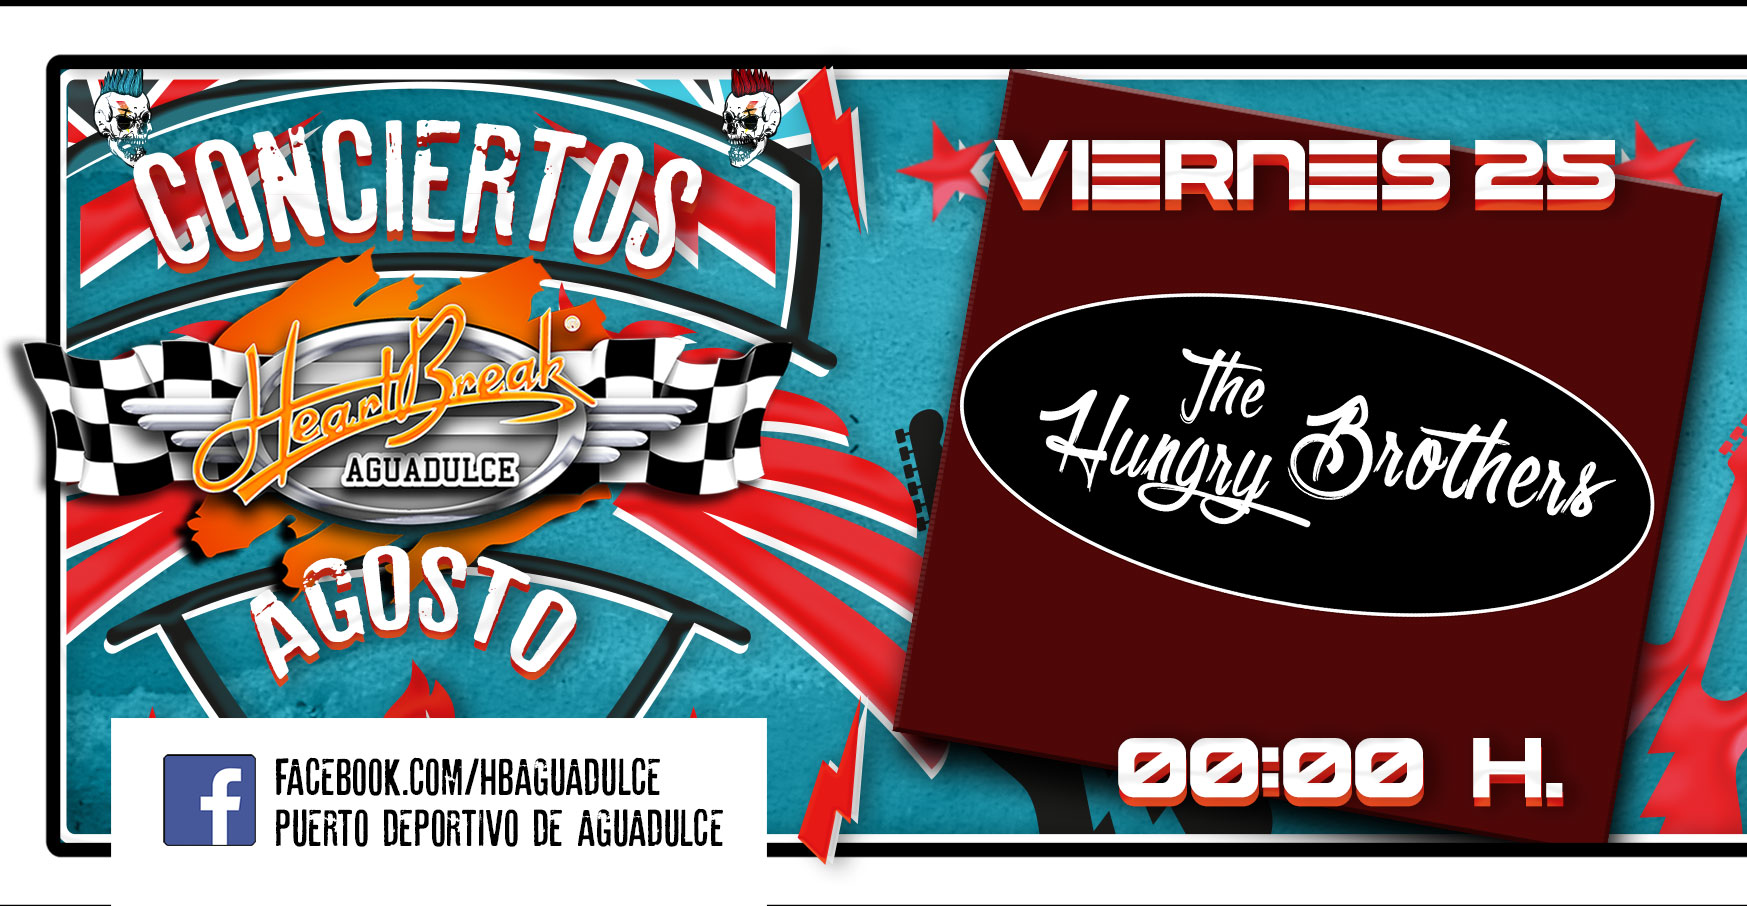 Concierto de The Hungry Brothers